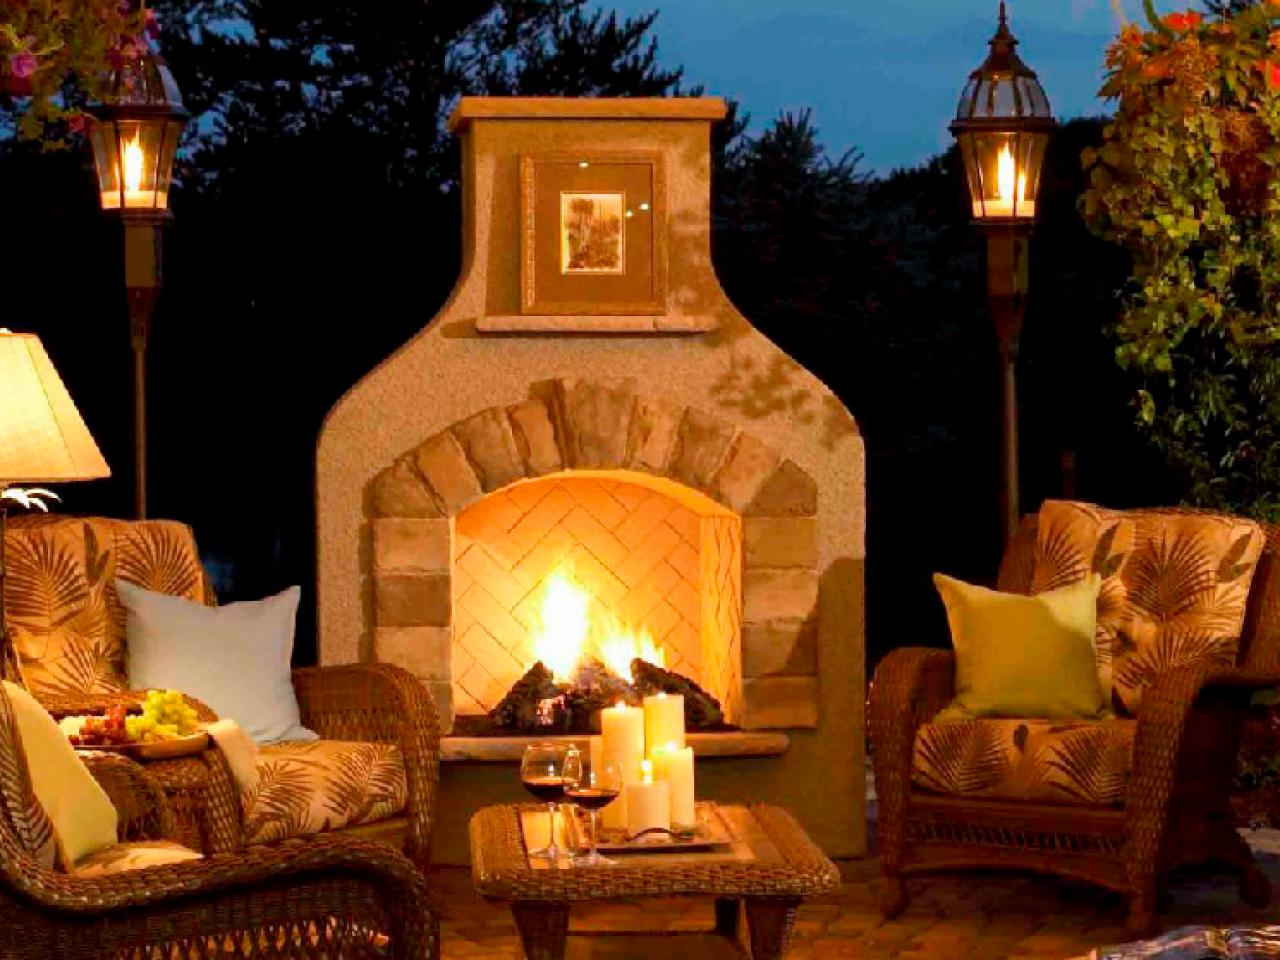 Outdoor Lighting Ideas and Options & Outdoor Lighting Ideas and Options | HGTV azcodes.com